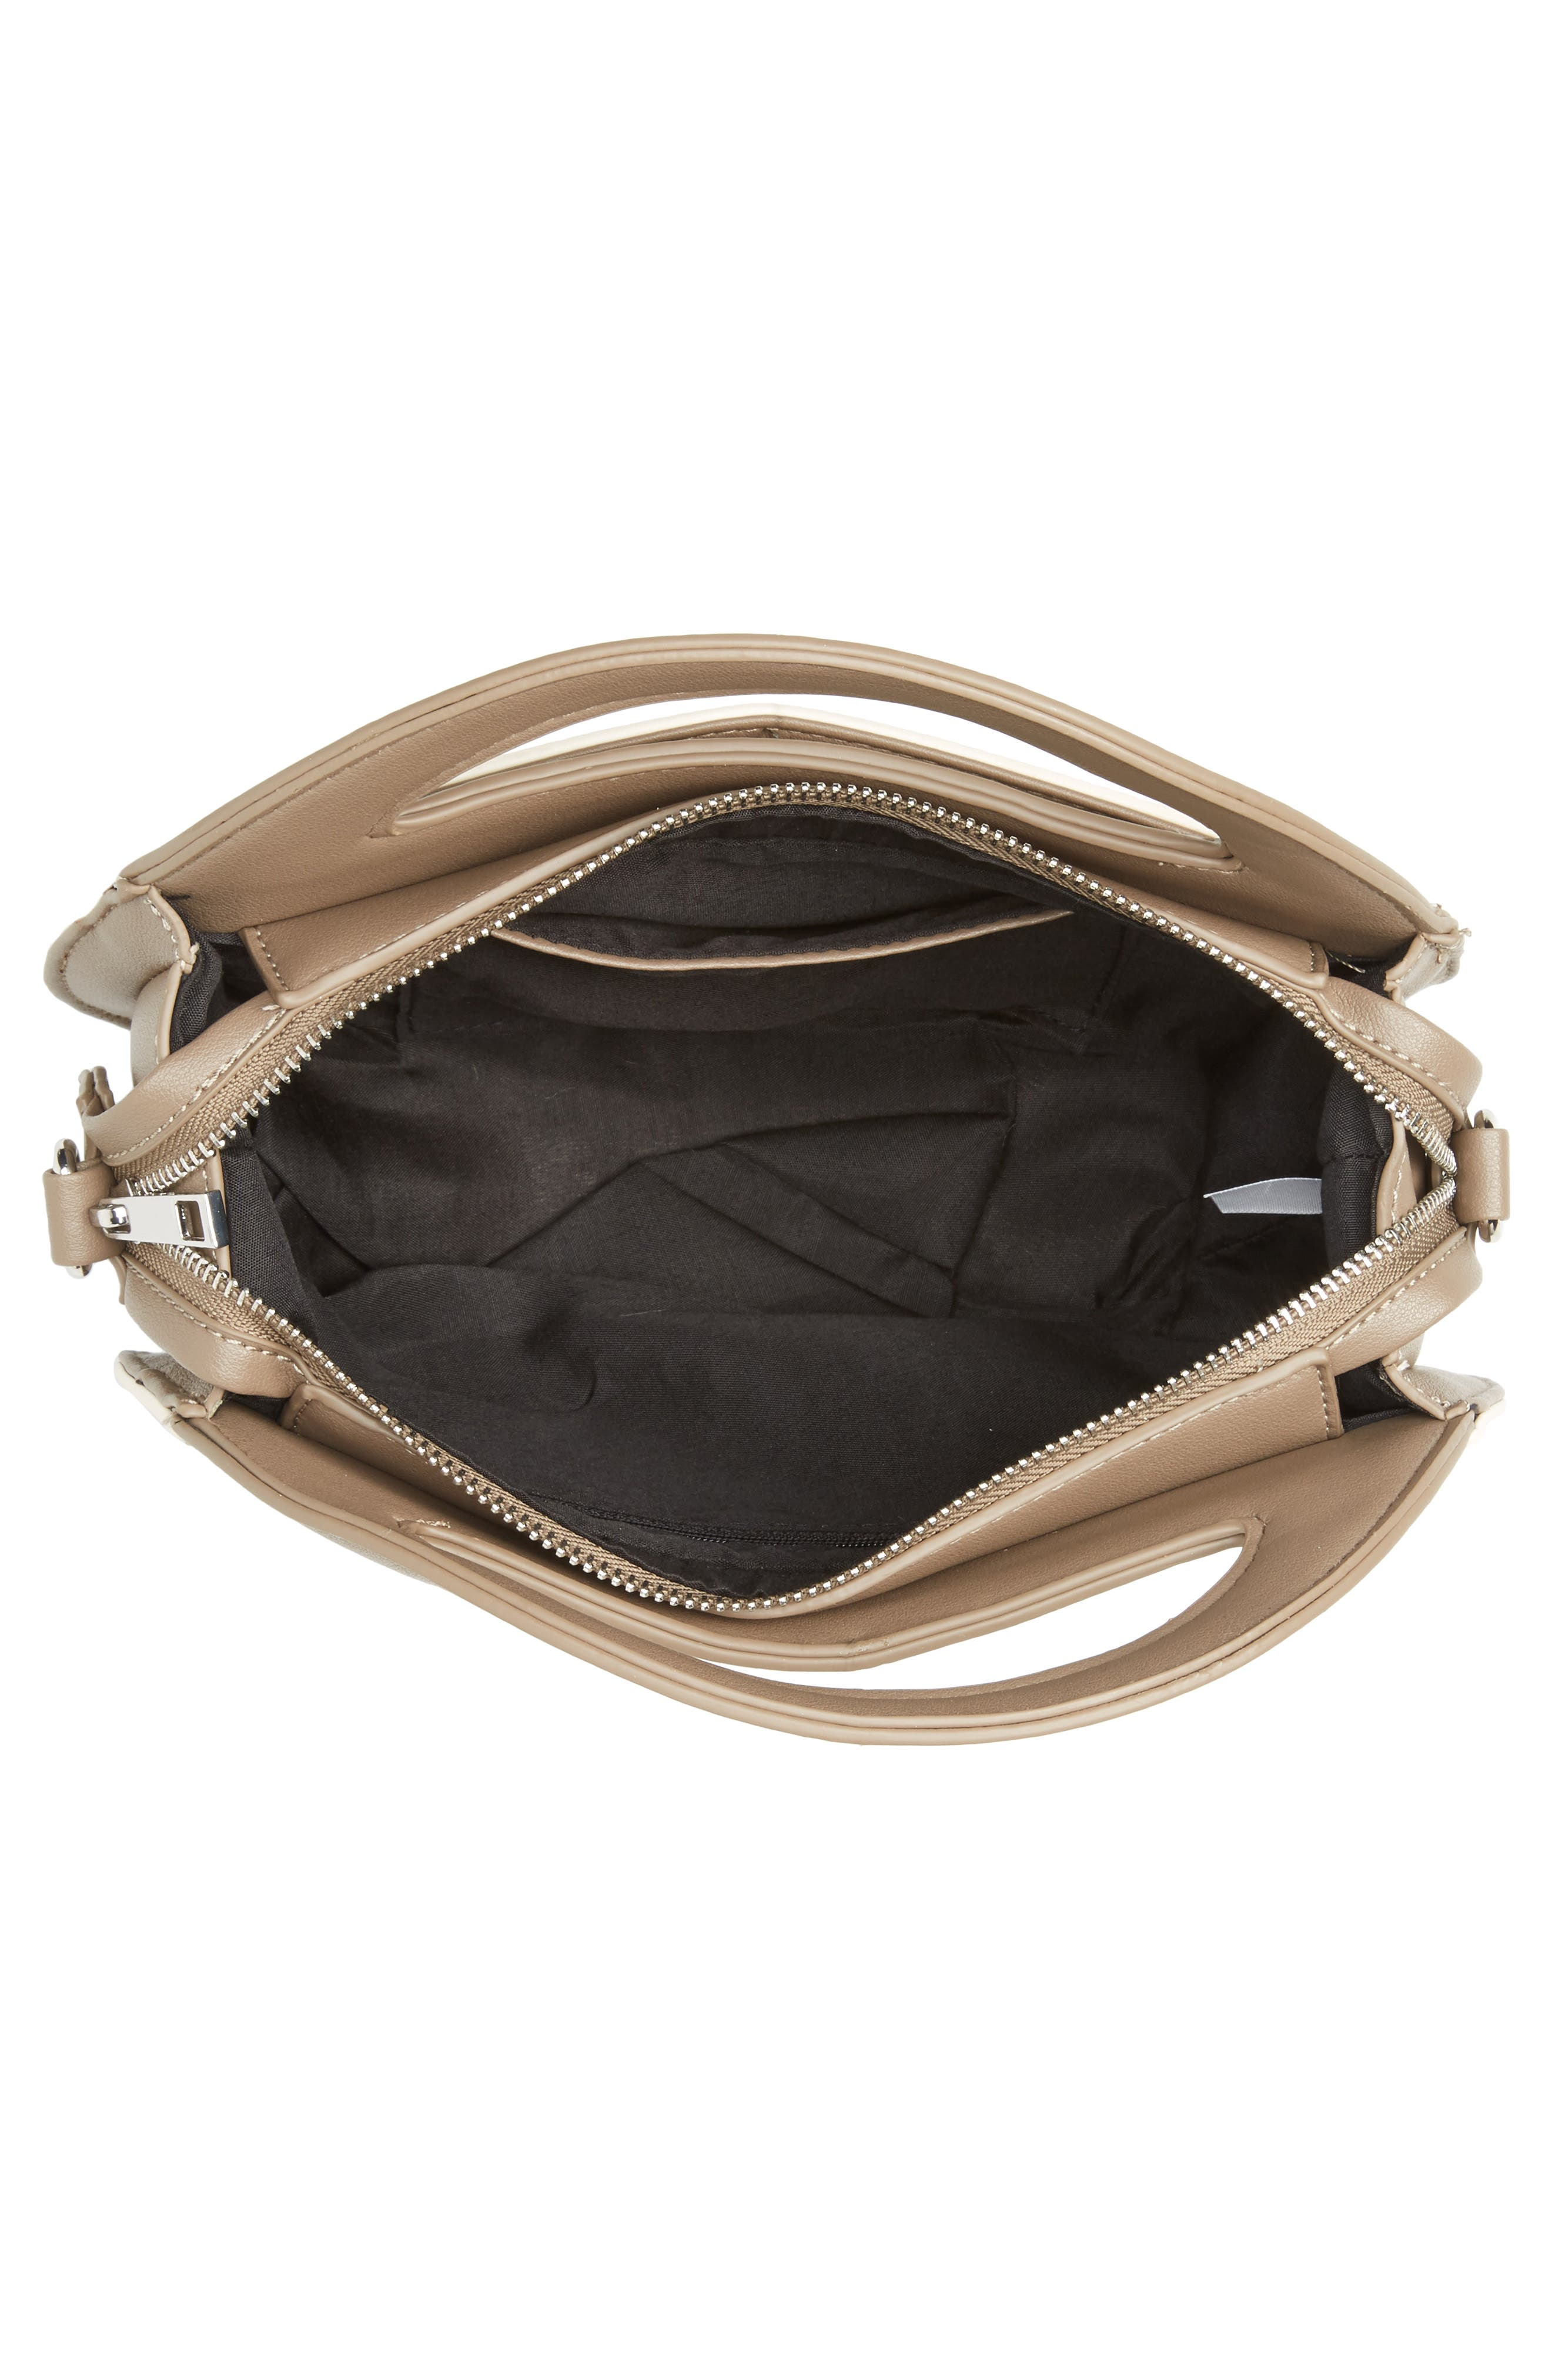 Two-Tone Faux Leather Oval Crossbody Bag,                             Alternate thumbnail 4, color,                             250